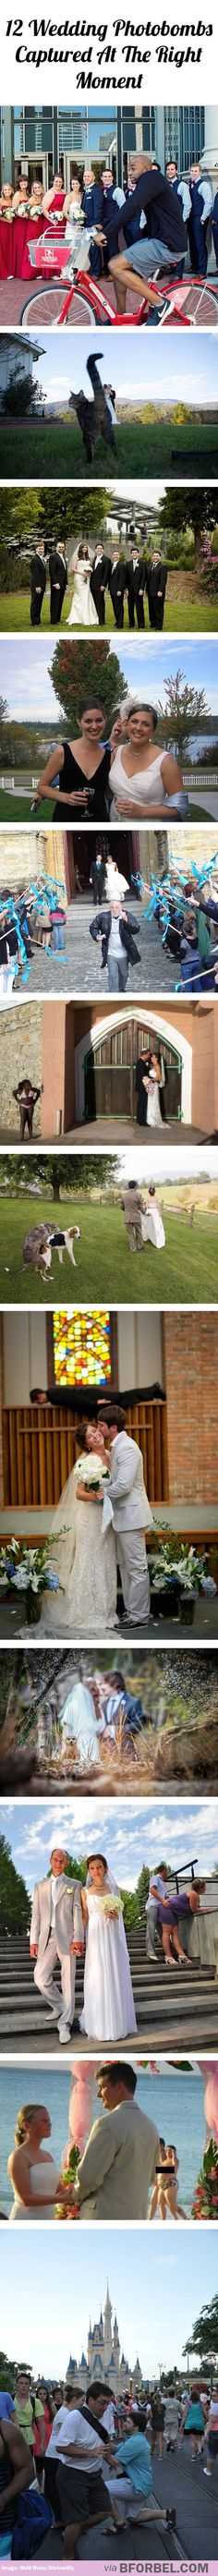 12 wedding photobombs captured at the right moment